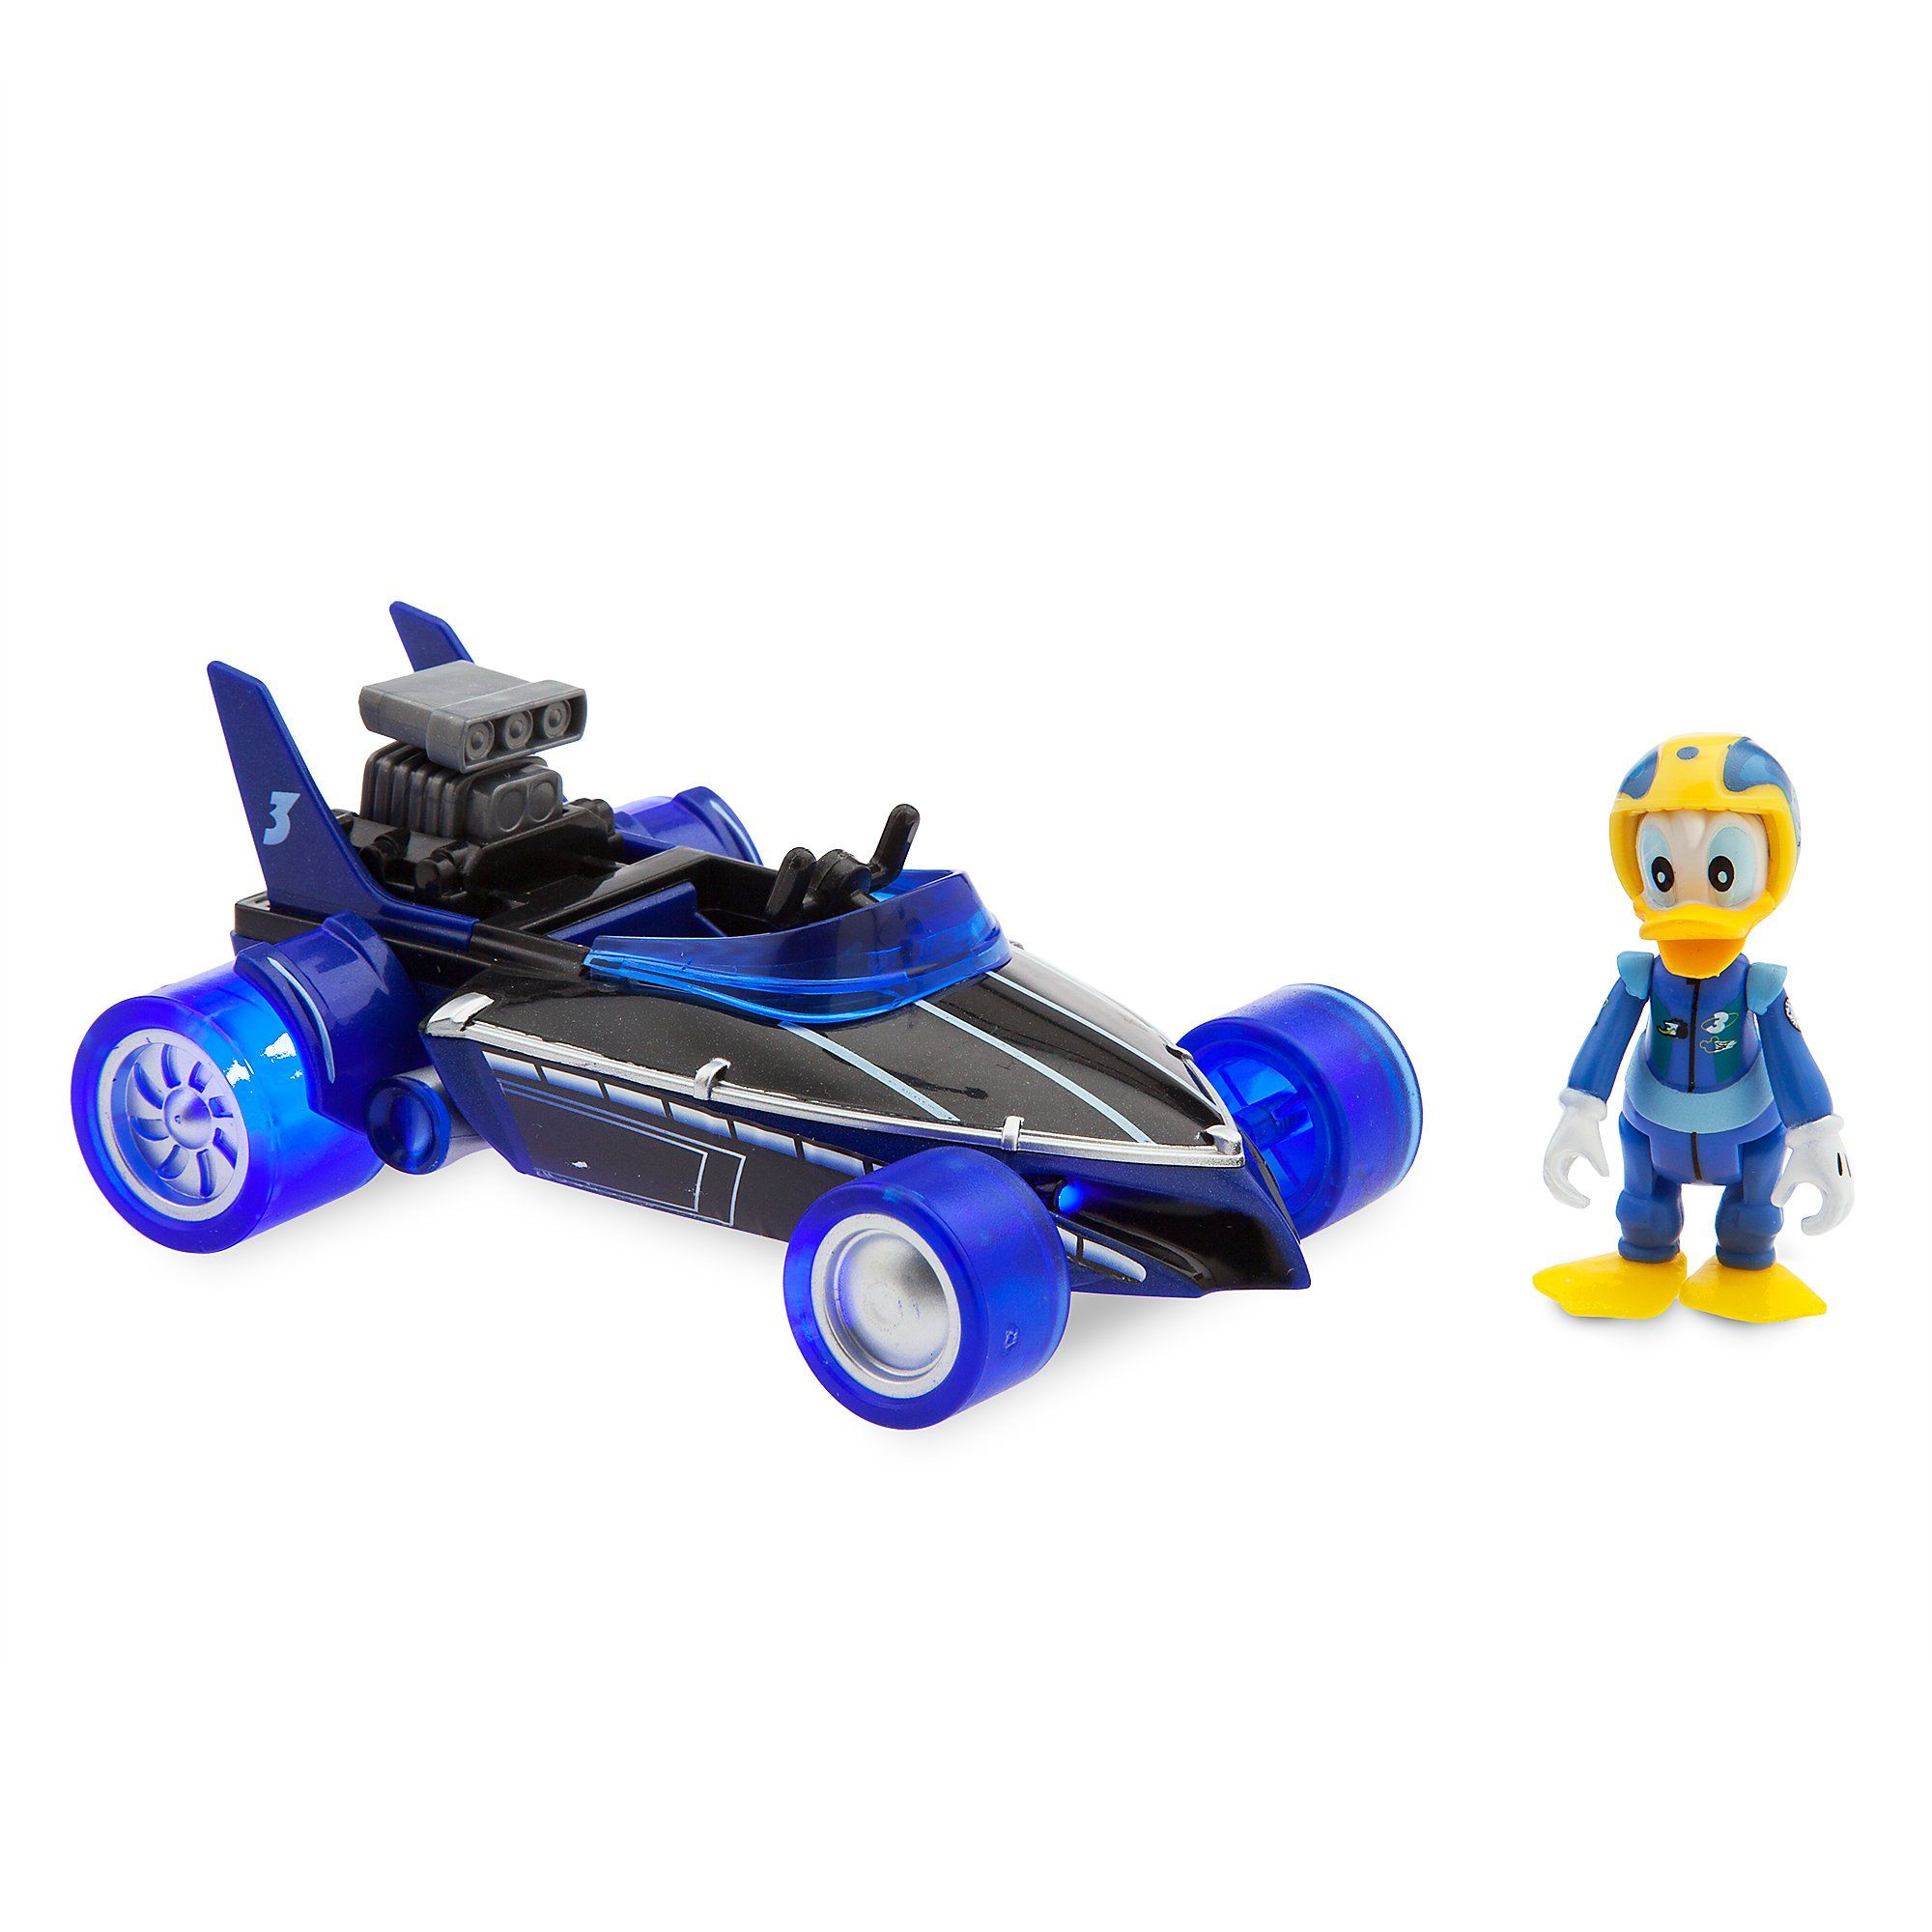 Disney Donald Duck Lightup Racer Mickey And The Roadster Racers